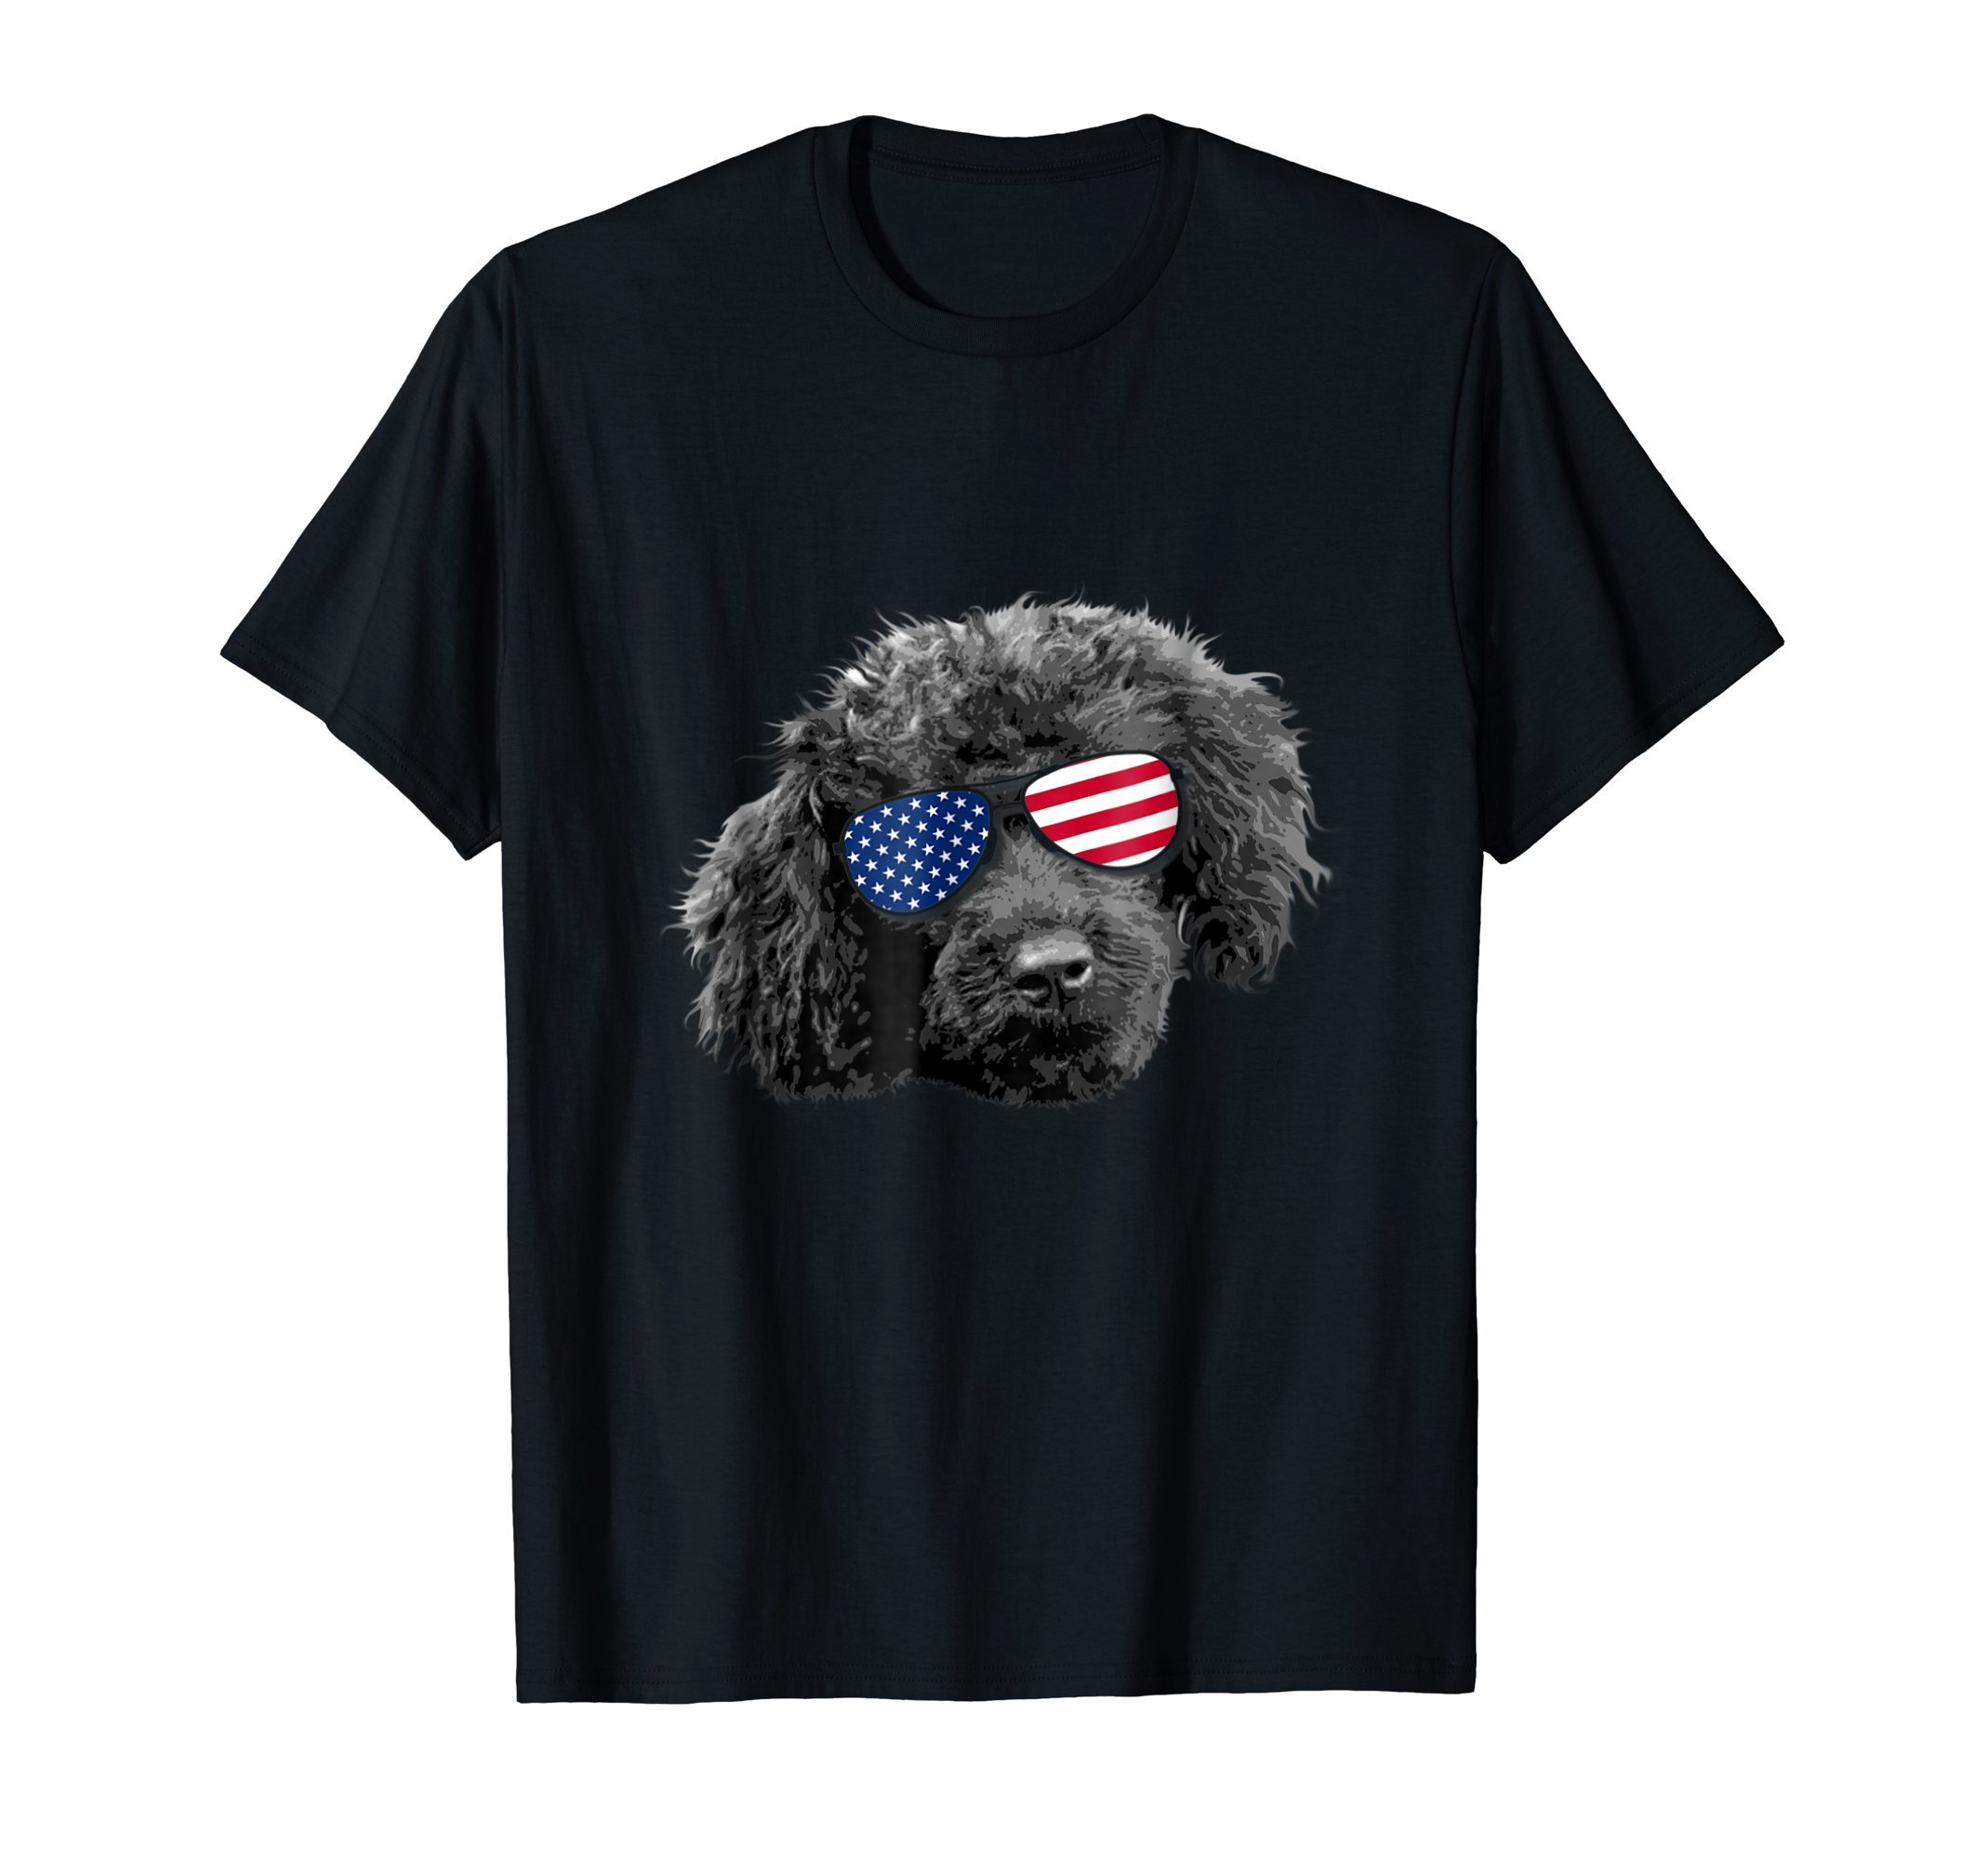 Patriotic Toy Poodle Dog Merica T-Shirt 4th of july